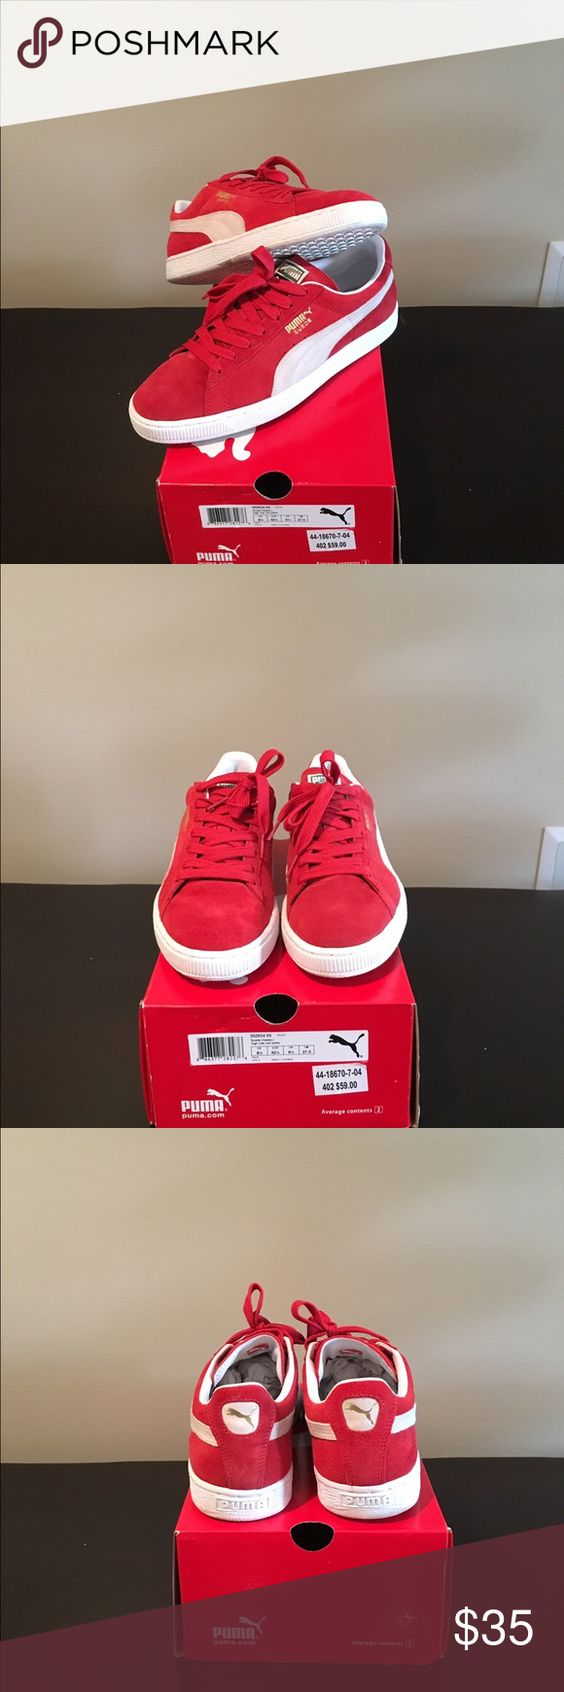 Men's PUMA Suede Classic Shoes - Brand New!! Men's PUMA Suede Classic Shoes - Brand New!! Color: Risk Red/ White Puma Shoes Sneakers